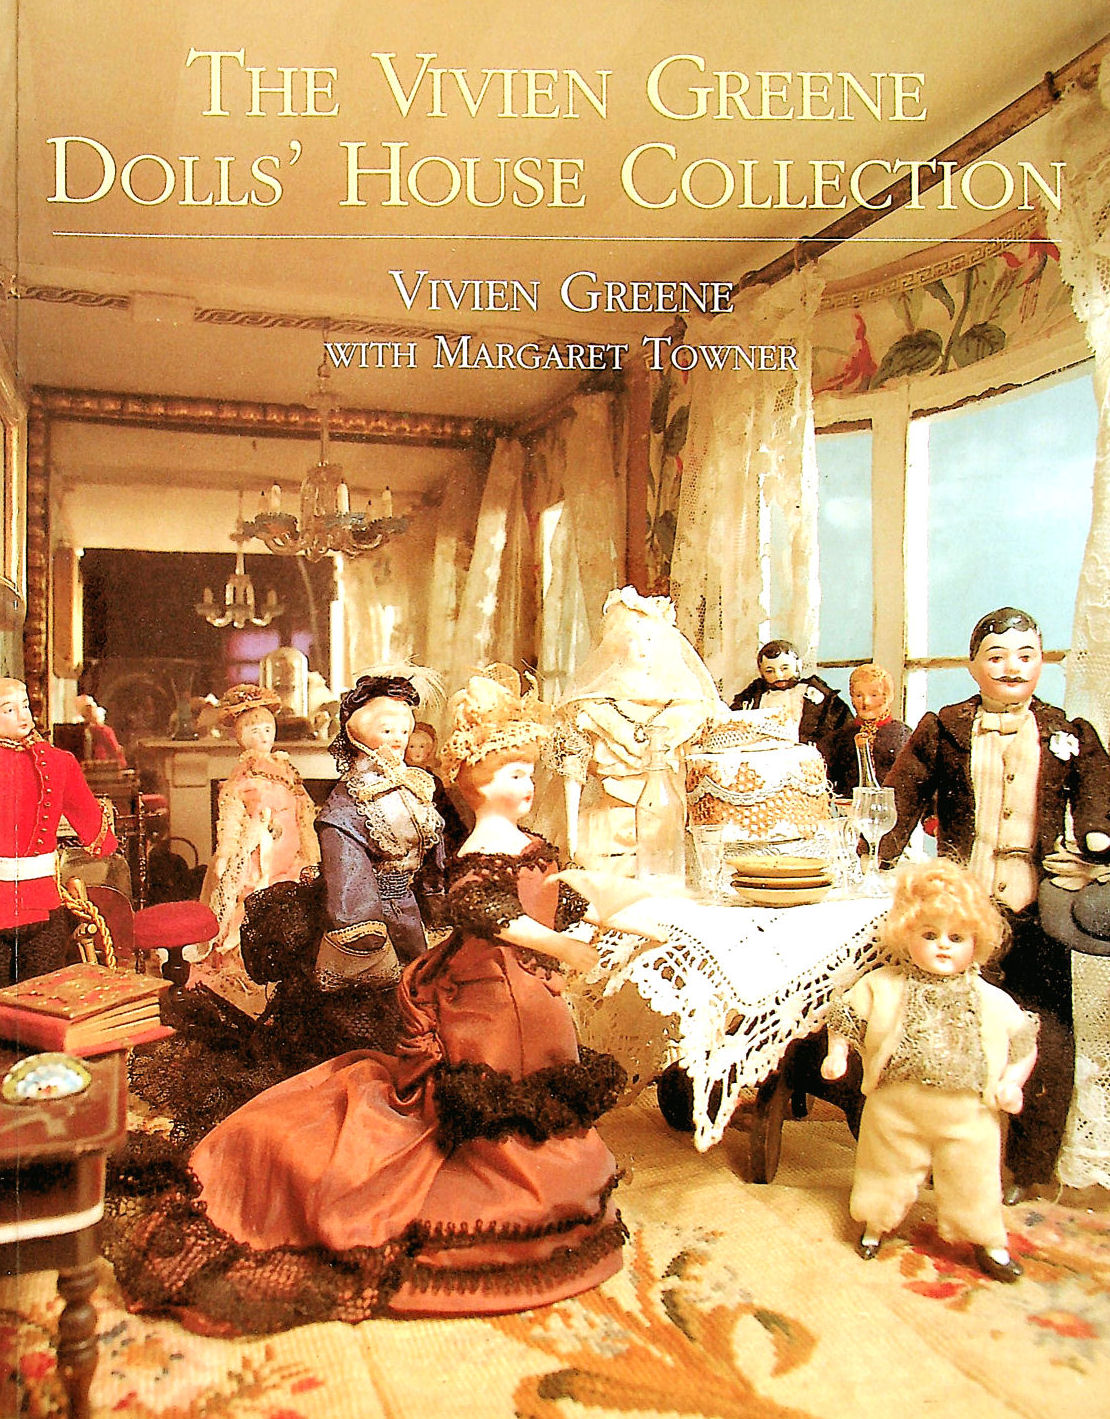 Image for The Vivien Greene's Doll's House Collection